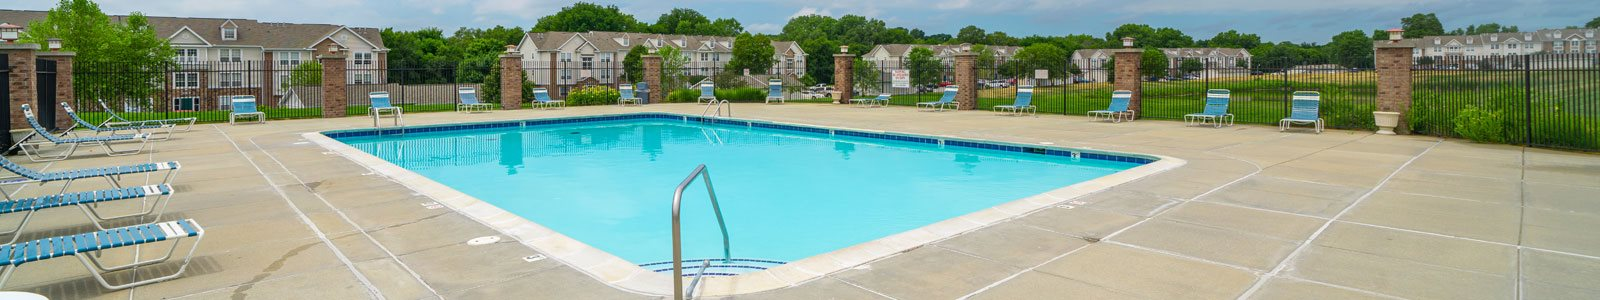 Outdoor Swimming Pool and Large Sundeck at West Hampton Park Apartment Homes, 68022